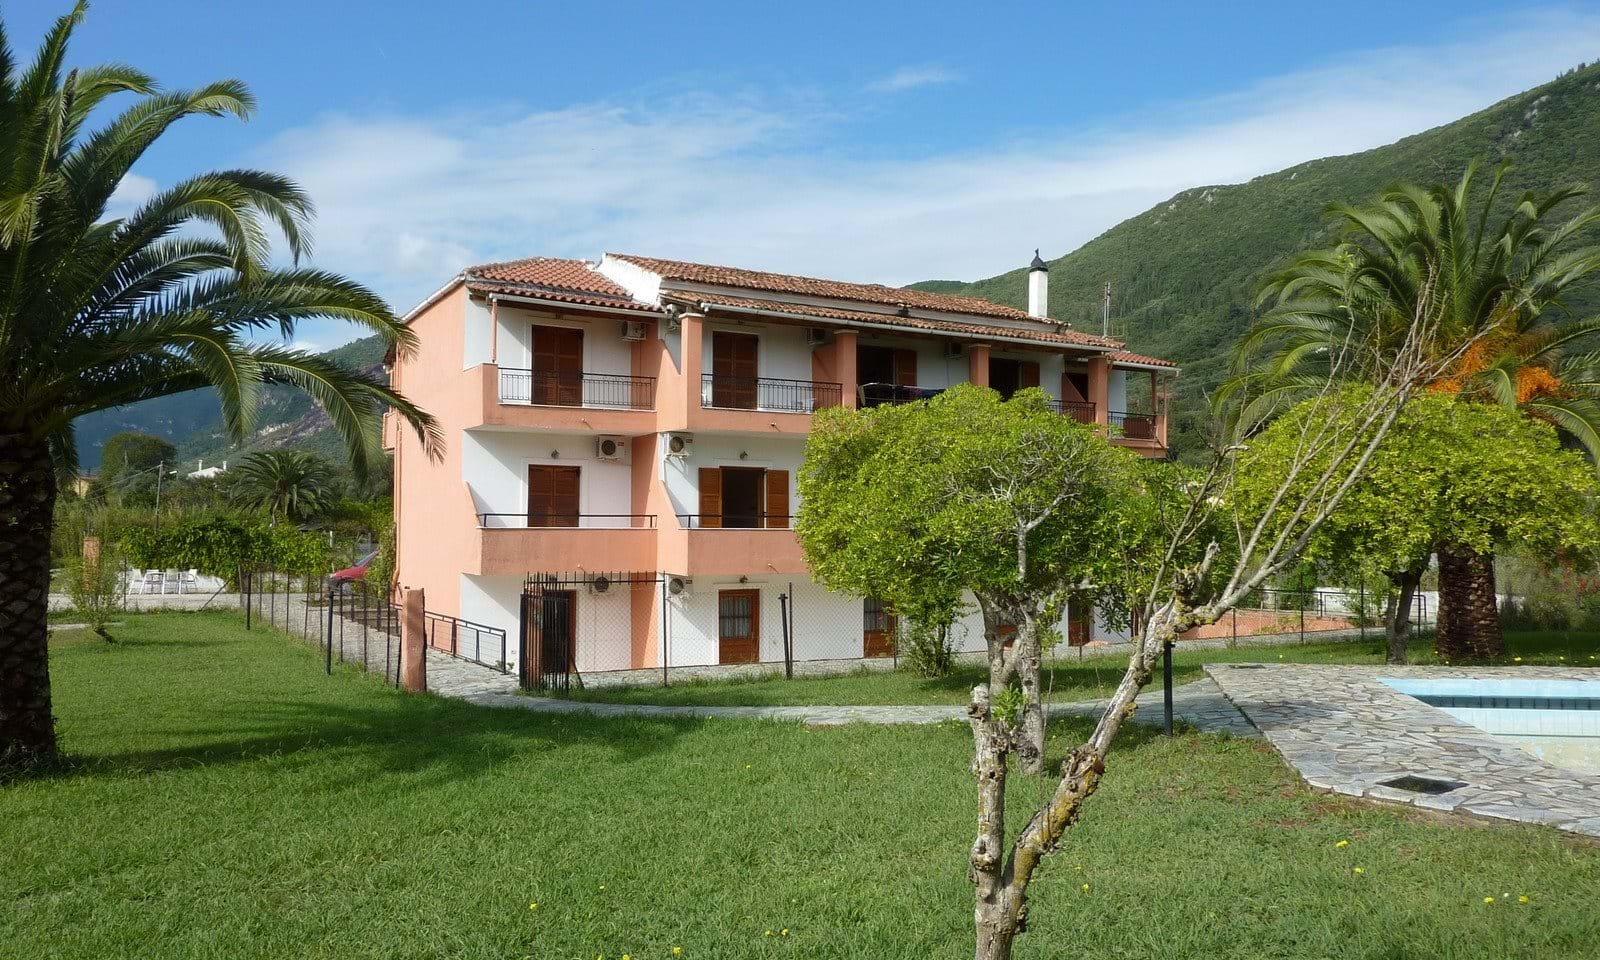 Apartment building for sale Corfu